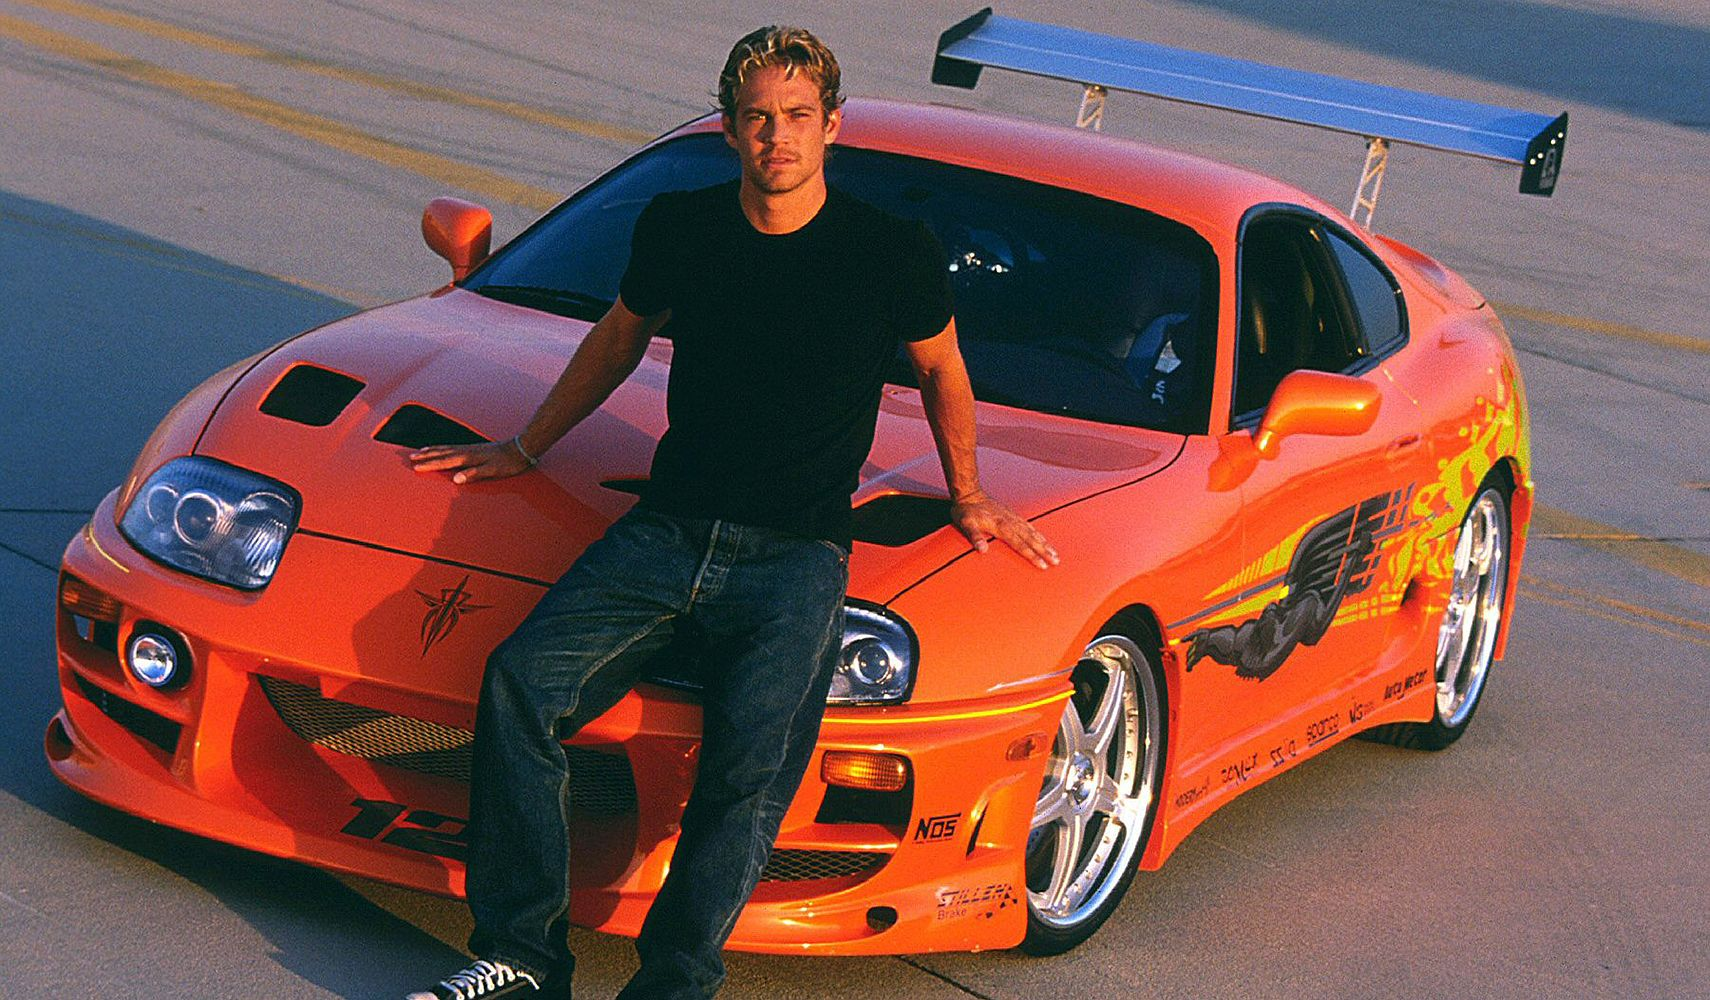 Here's Where Paul Walker's Toyota Supra From The Fast And Furious Is Today